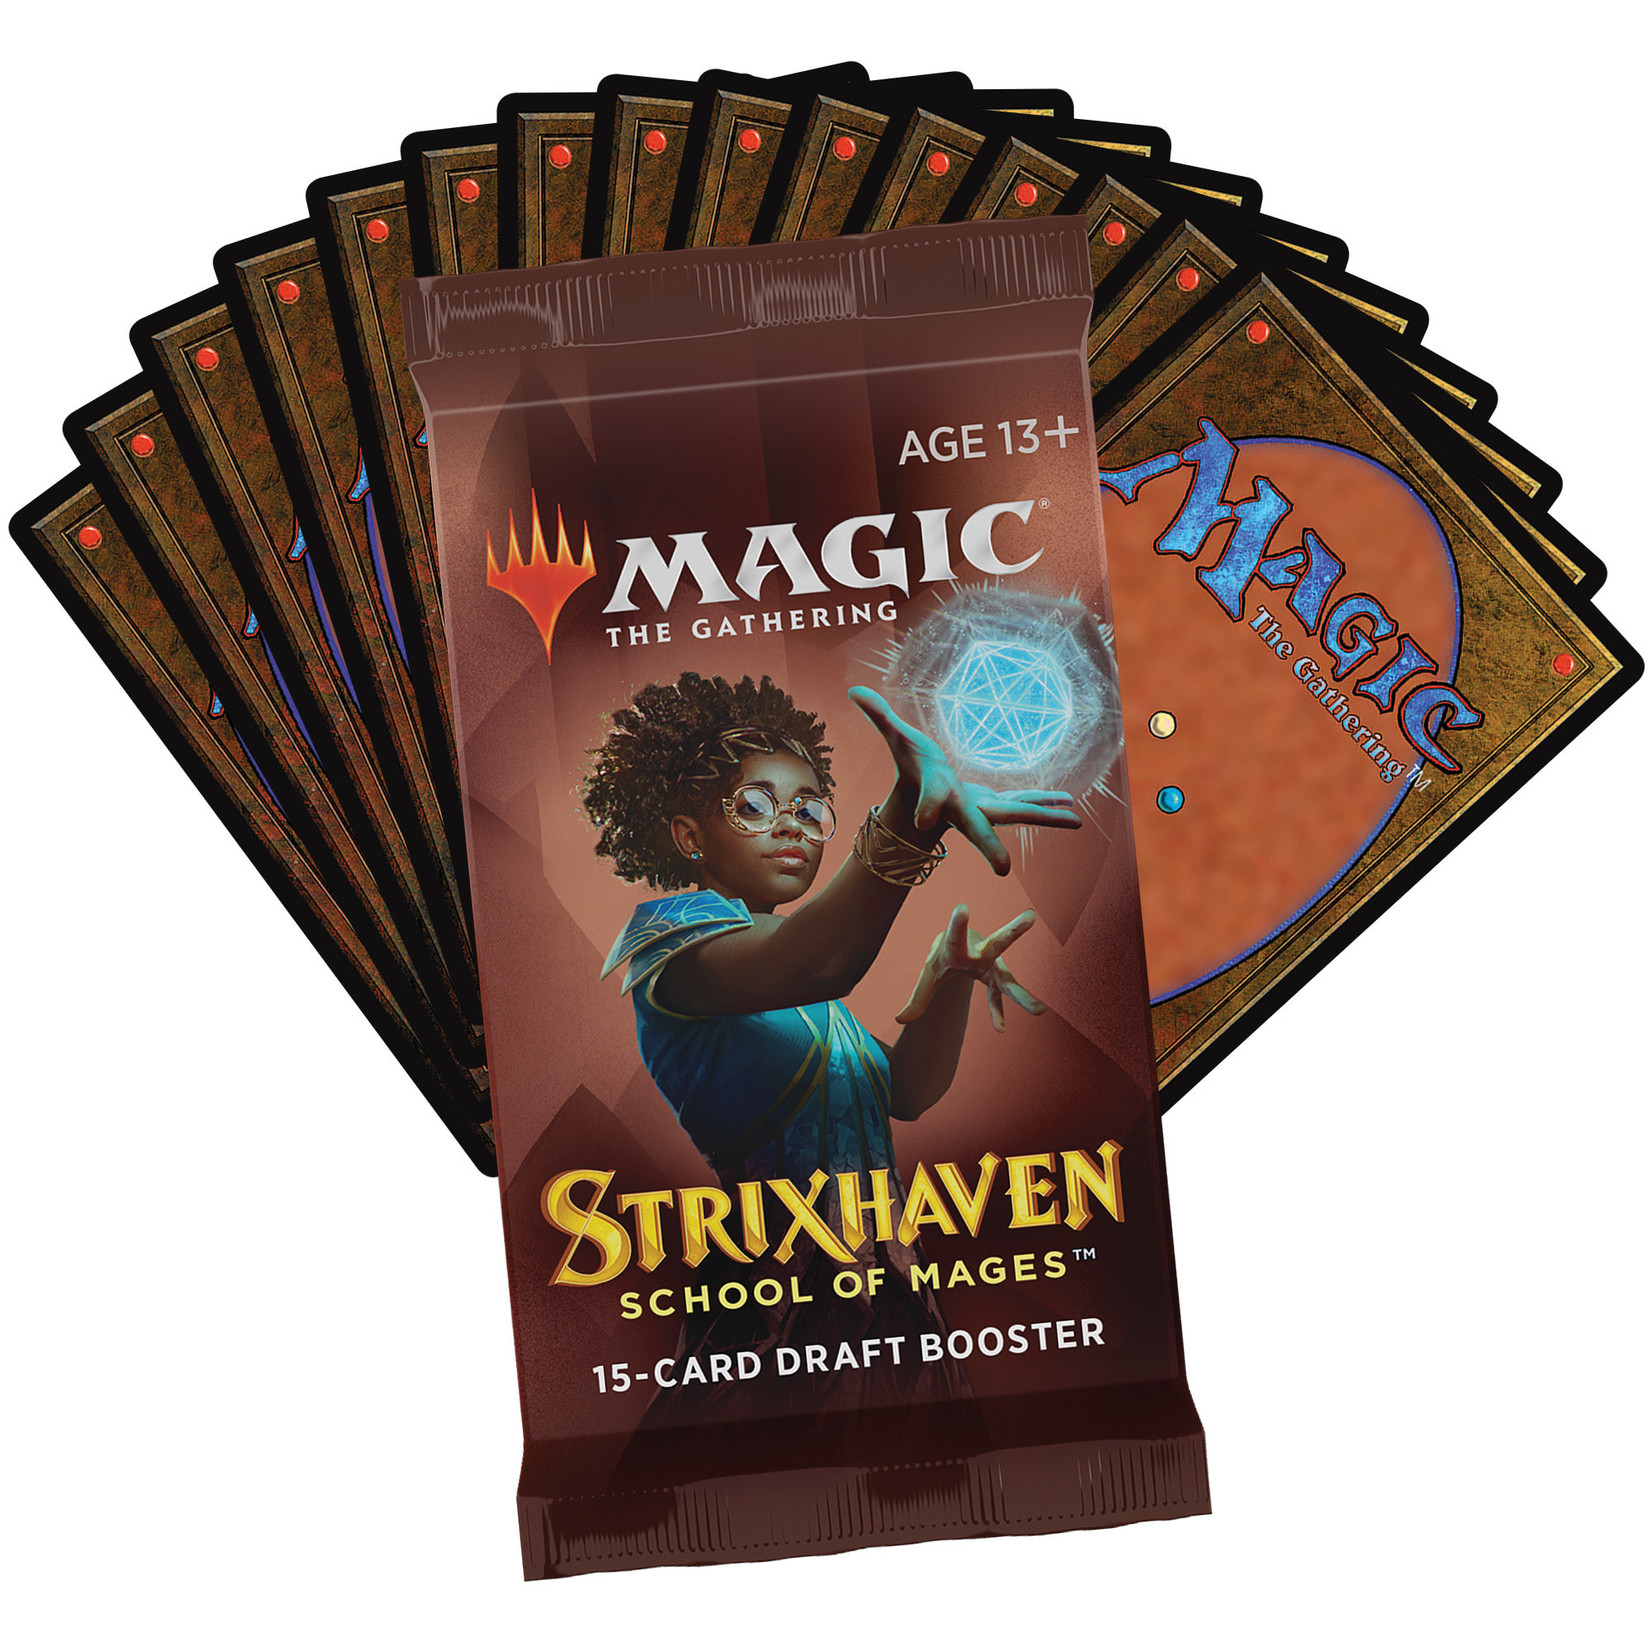 Magic: The Gathering Magic: The Gathering - Strixhaven: School of Mages - Draft Booster Box